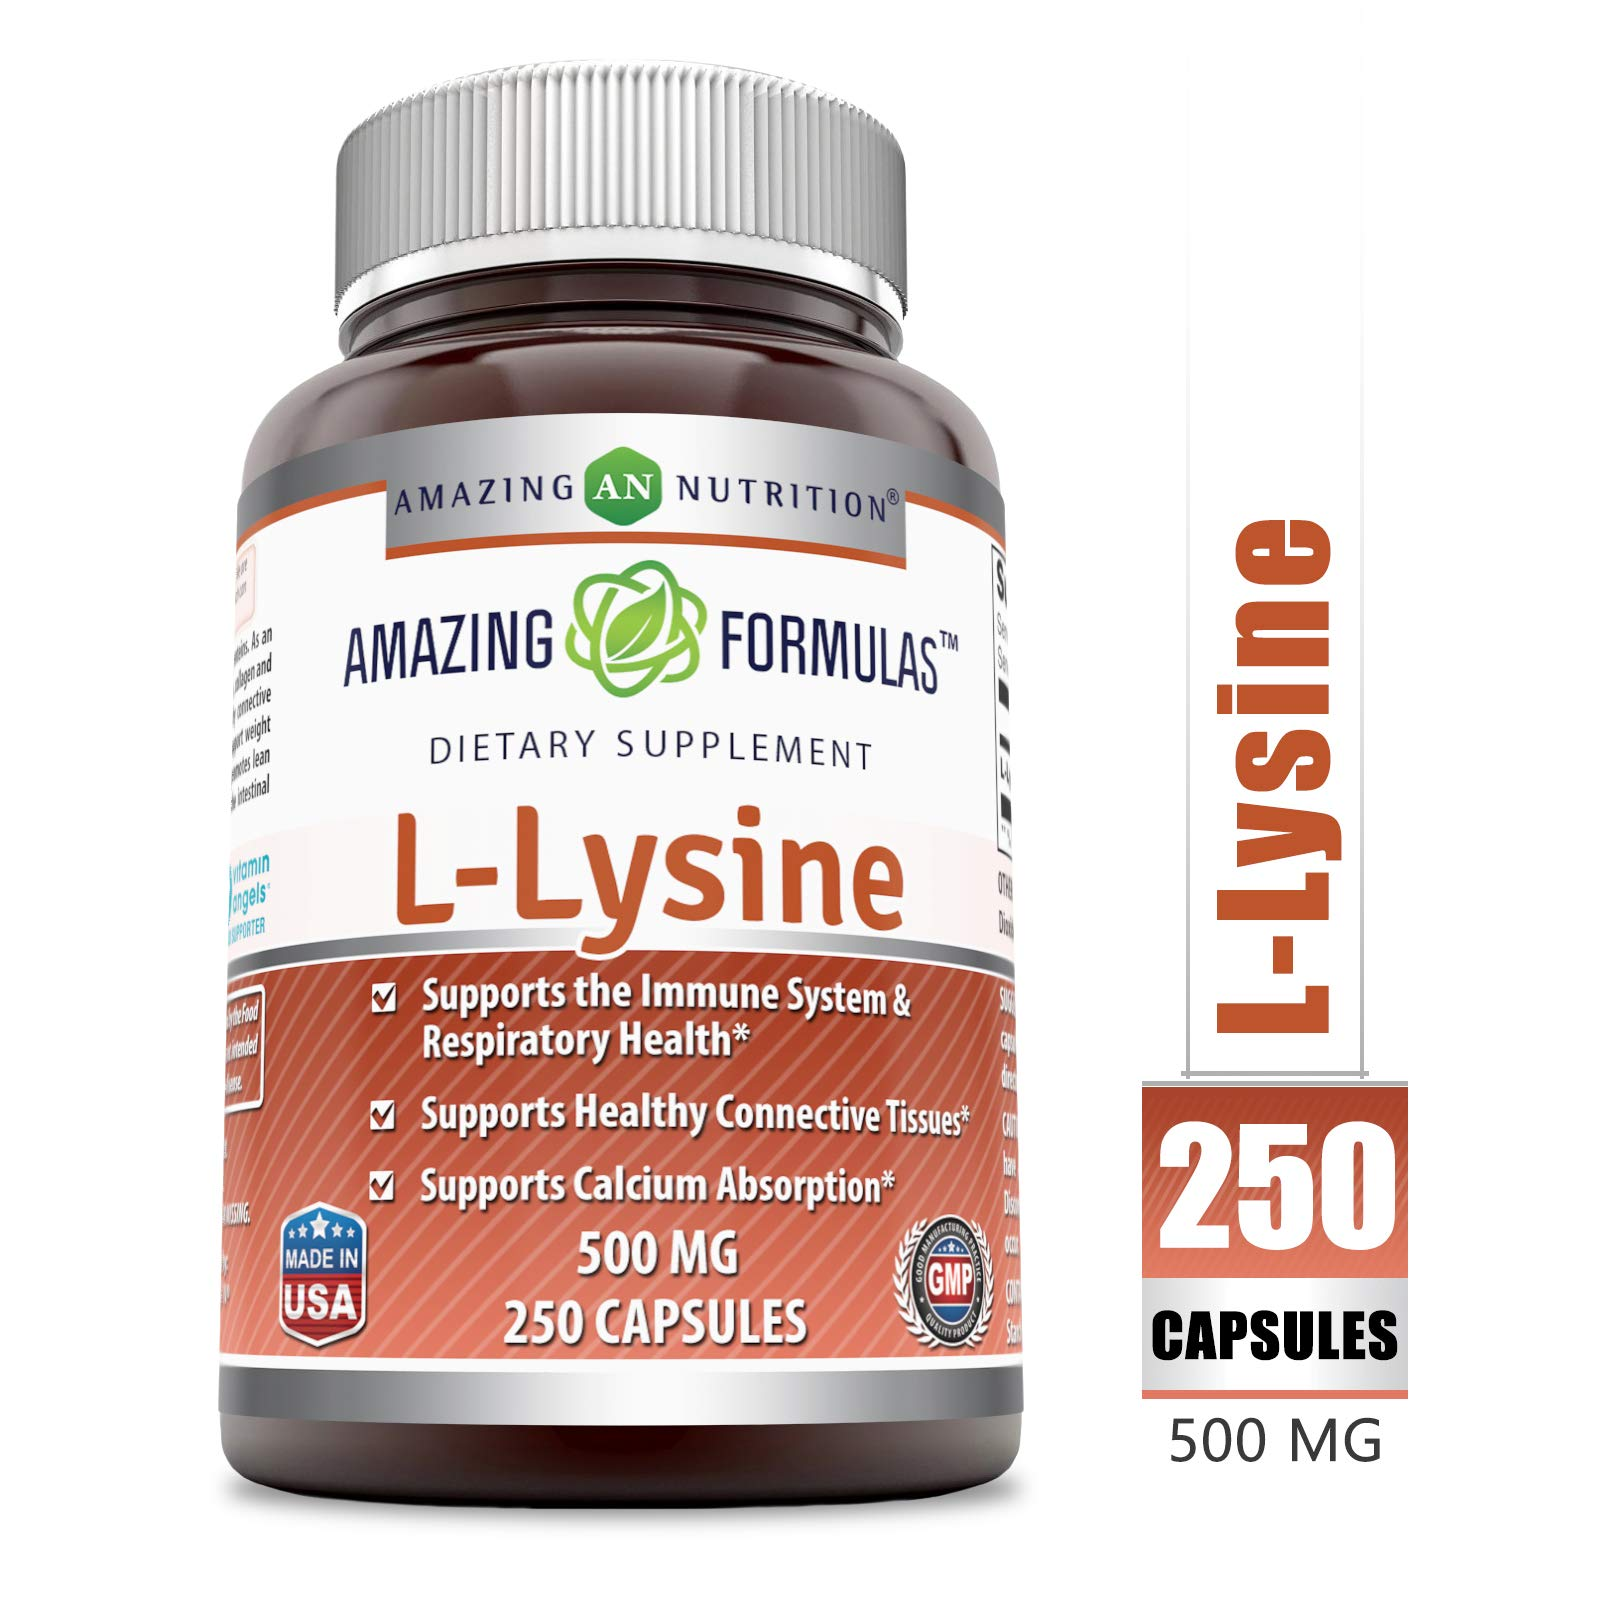 Amazing Nutrition Amazing Formulas L-Lysine - 500mg Amino Acid Vitamin Capsules - Commonly Used for Cold Sores, Immune Support, Respiratory Health & More (250 Caspules) by Amazing Nutrition